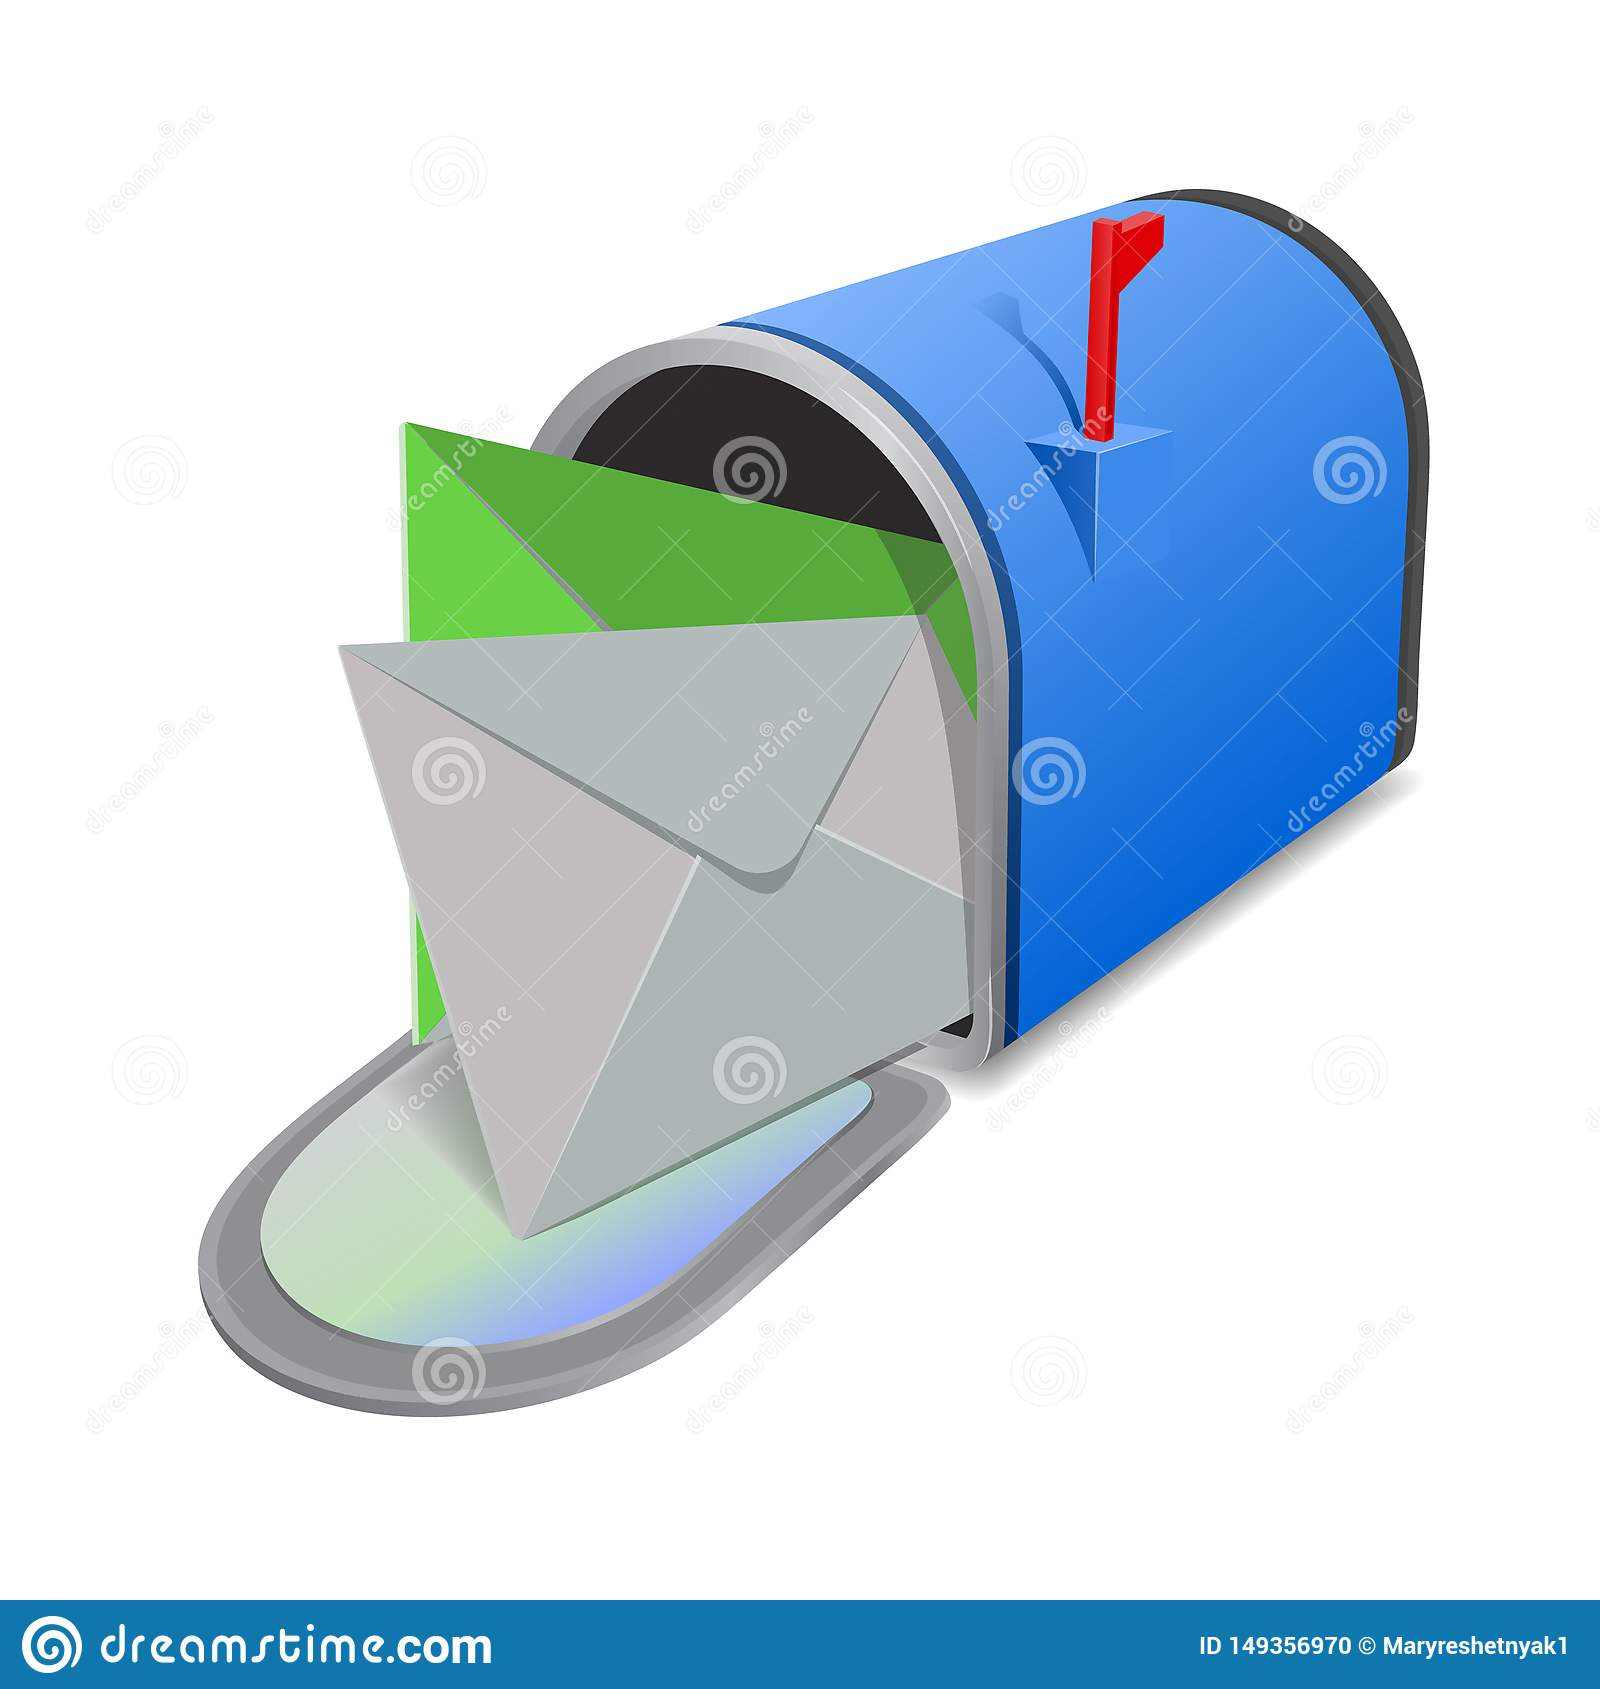 EnveOpen red mail box with envelopes on the cover isolated from background. Vector